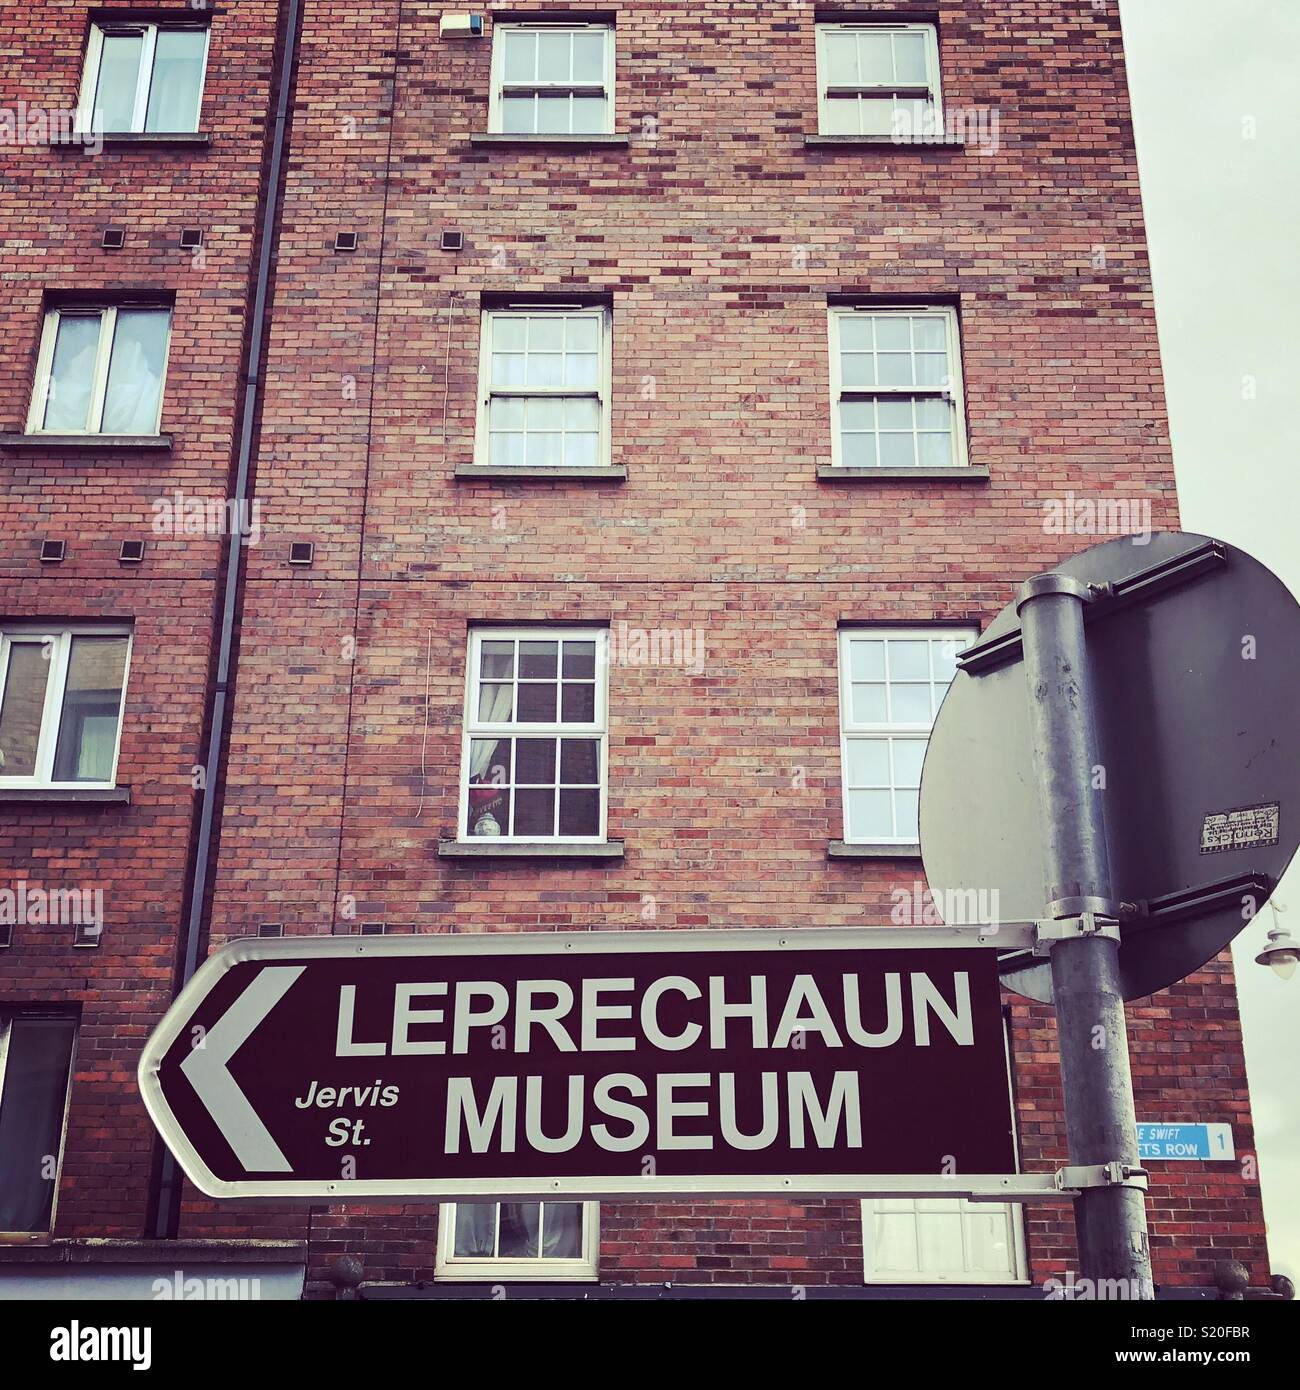 A sign pointing to the Leprechaun museum in Dublin, Ireland. - Stock Image